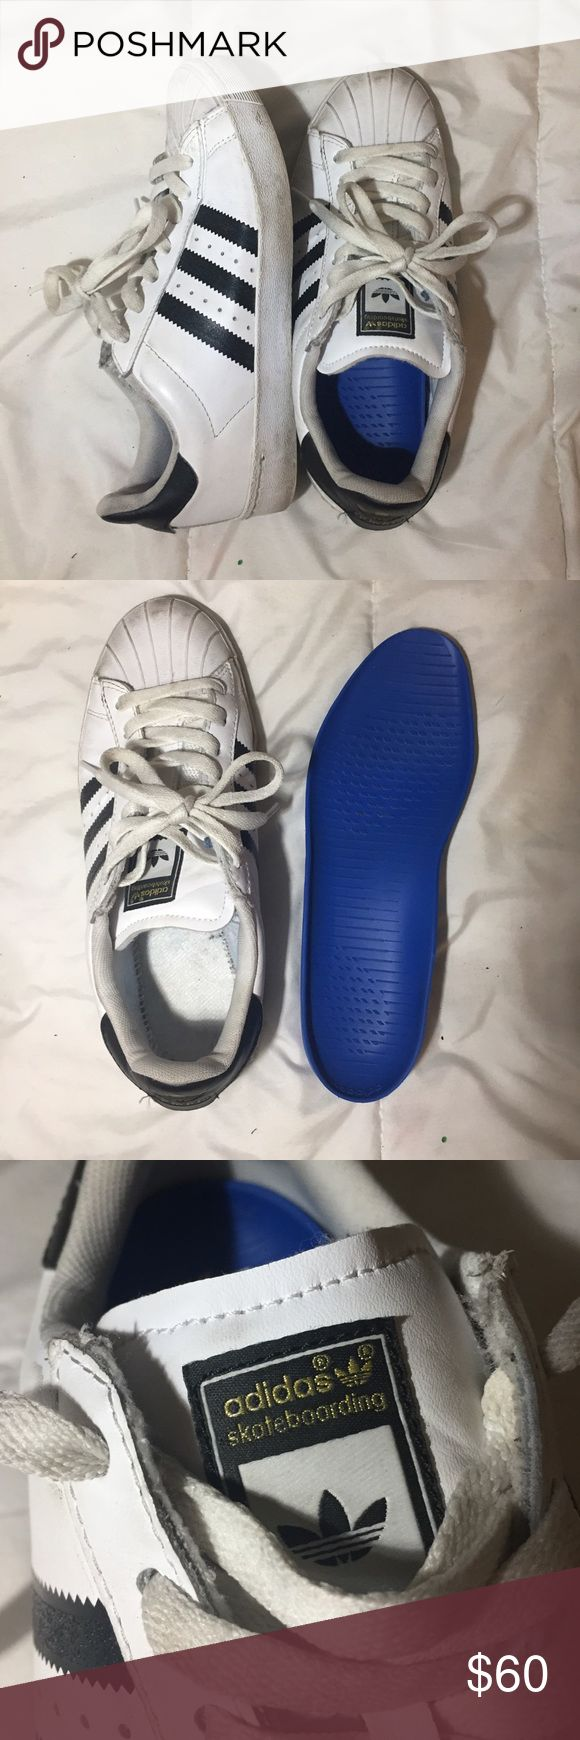 adidas skateboarding superstars adidas shell toe skate superstars removable insoles I've only worn these like twice just too lazy to clean them up they could look brand new men's size 6 womens 8 Adidas Shoes Sneakers